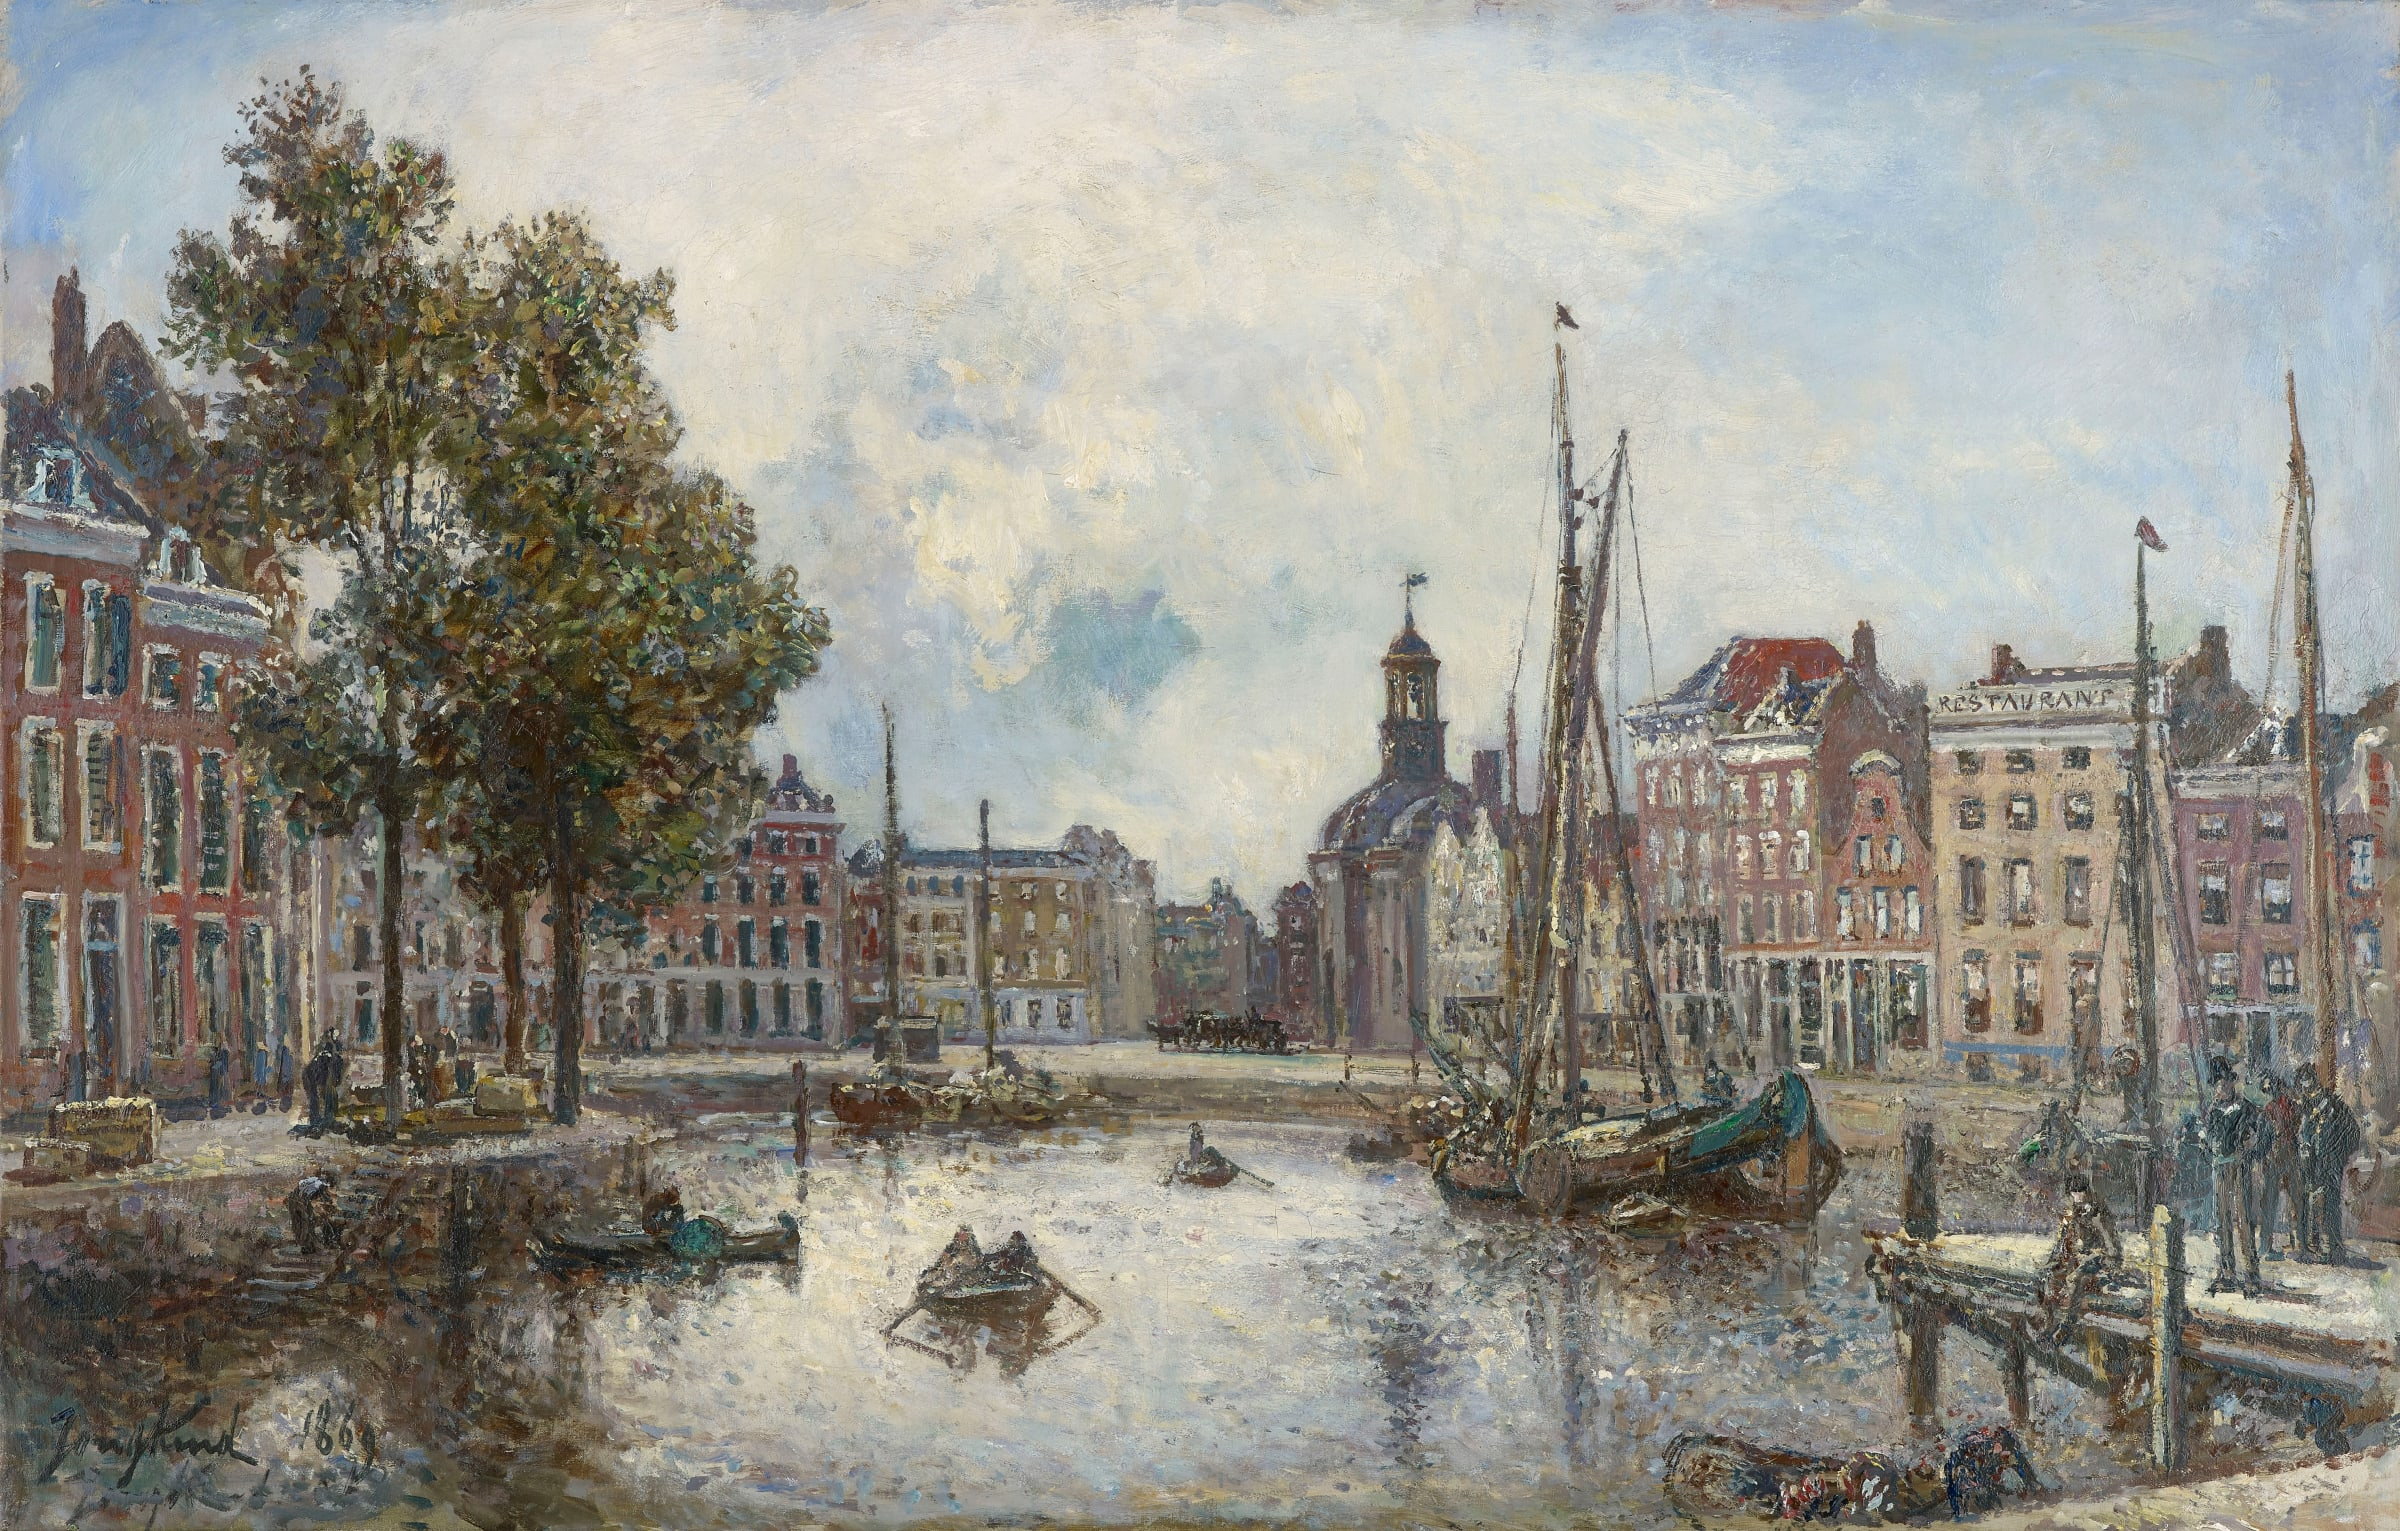 """<span class=""""link fancybox-details-link""""><a href=""""/artists/53-johan-barthold-jongkind/works/9397-johan-barthold-jongkind-le-port-de-rotterdam-le-matin-vue-sur-1869/"""">View Detail Page</a></span><div class=""""artist""""><span class=""""artist""""><strong>Johan-Barthold Jongkind</strong></span></div><div class=""""title""""><em>Le port de Rotterdam, le matin; vue sur la Bourse,</em>, 1869</div><div class=""""signed_and_dated"""">Signed and dated lower left Jongkind 1869</div><div class=""""medium"""">Oil on canvas</div><div class=""""dimensions"""">52 x 81 cm<br /> 20 ½ x 31 7/8 inches</div>"""